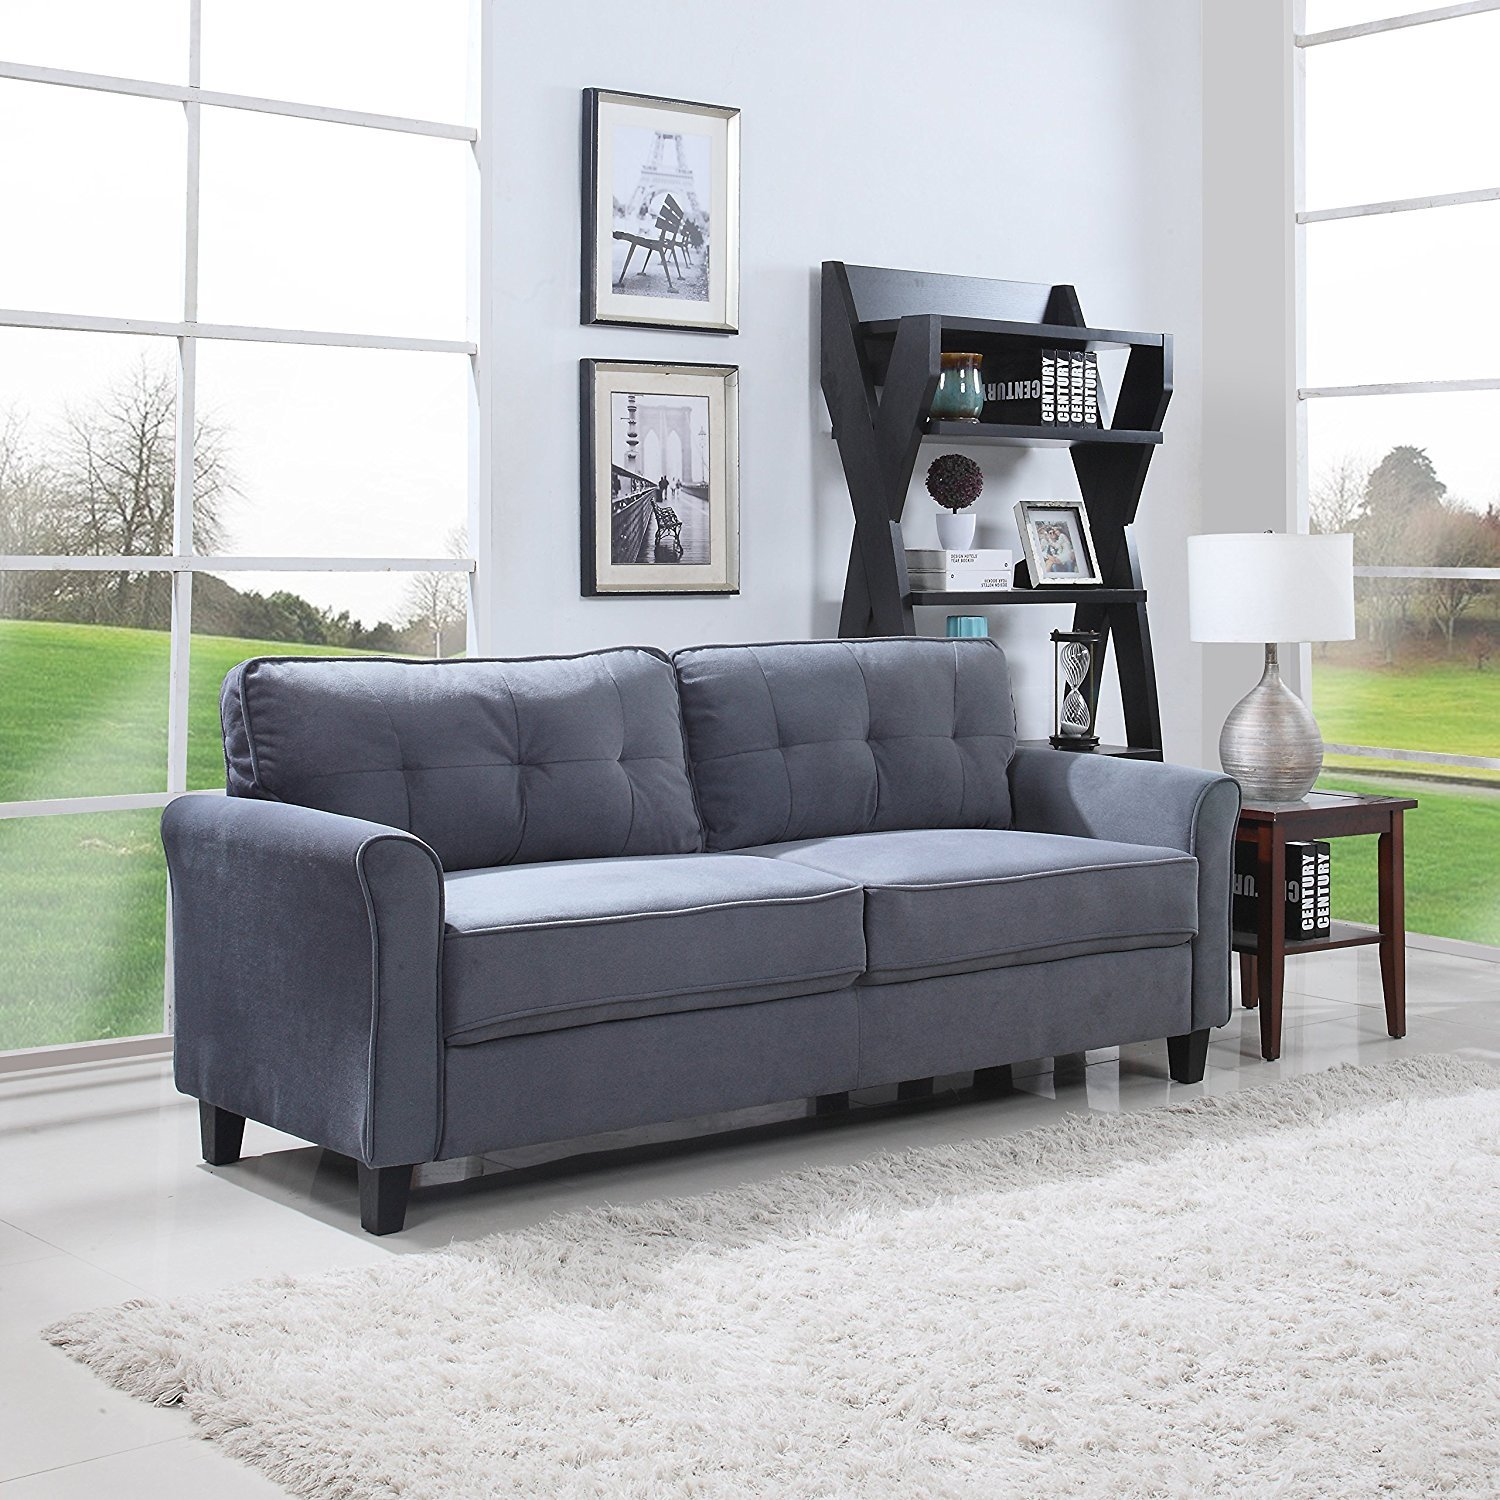 Etonnant Details About Classic Ultra Comfortable Brush Microfiber Fabric Living Room  Sofa (Dark Grey)